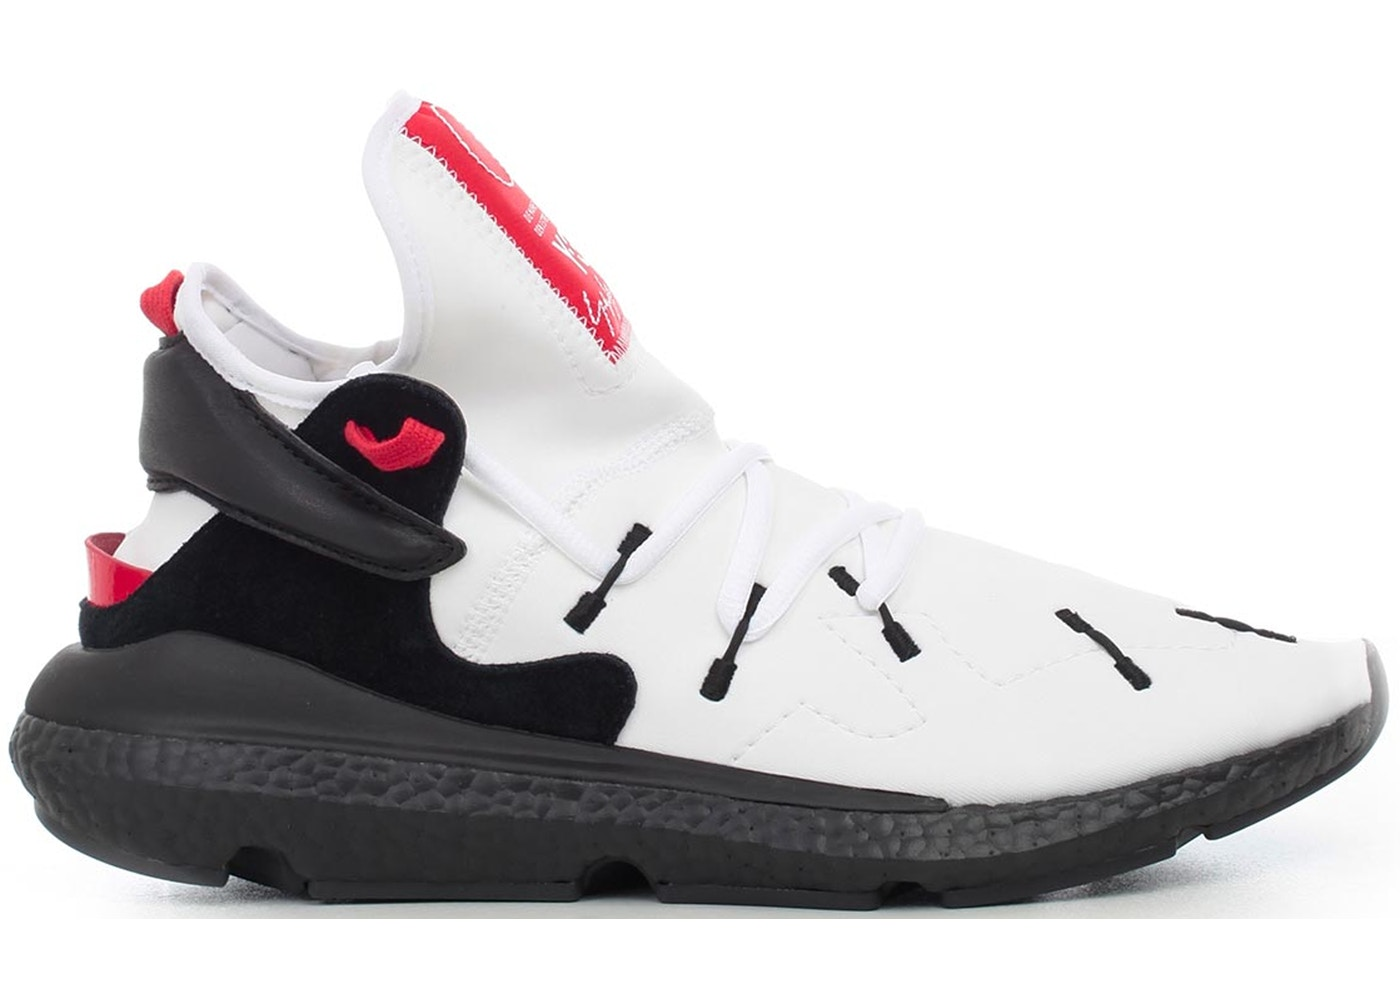 new product d1252 7a54d adidas Y-3 Kusari 2 White Black Red - BC0964